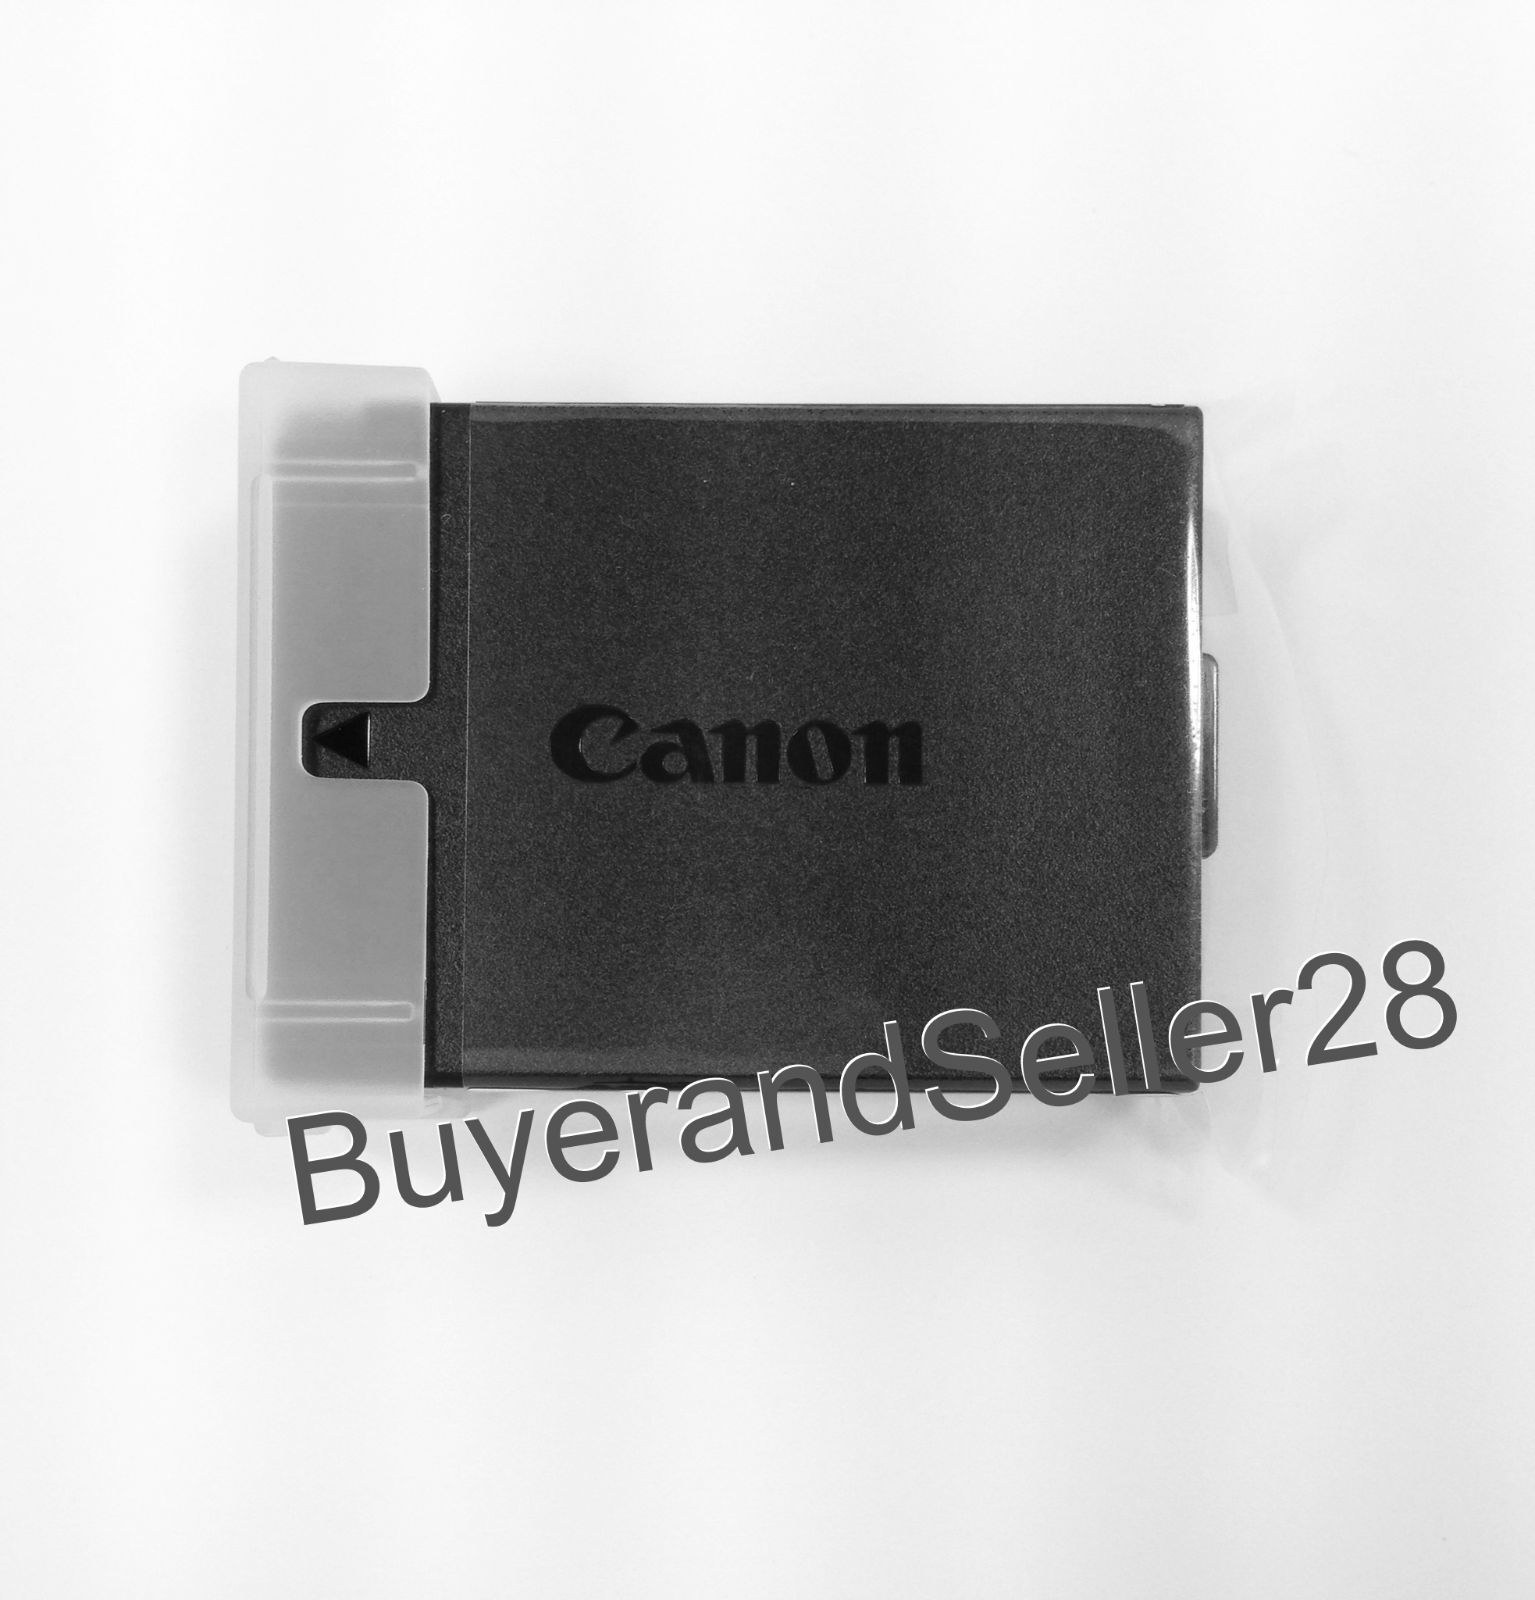 New Genuine Canon Rebel Camera Battery Pack LP-E10 Fits T3/T